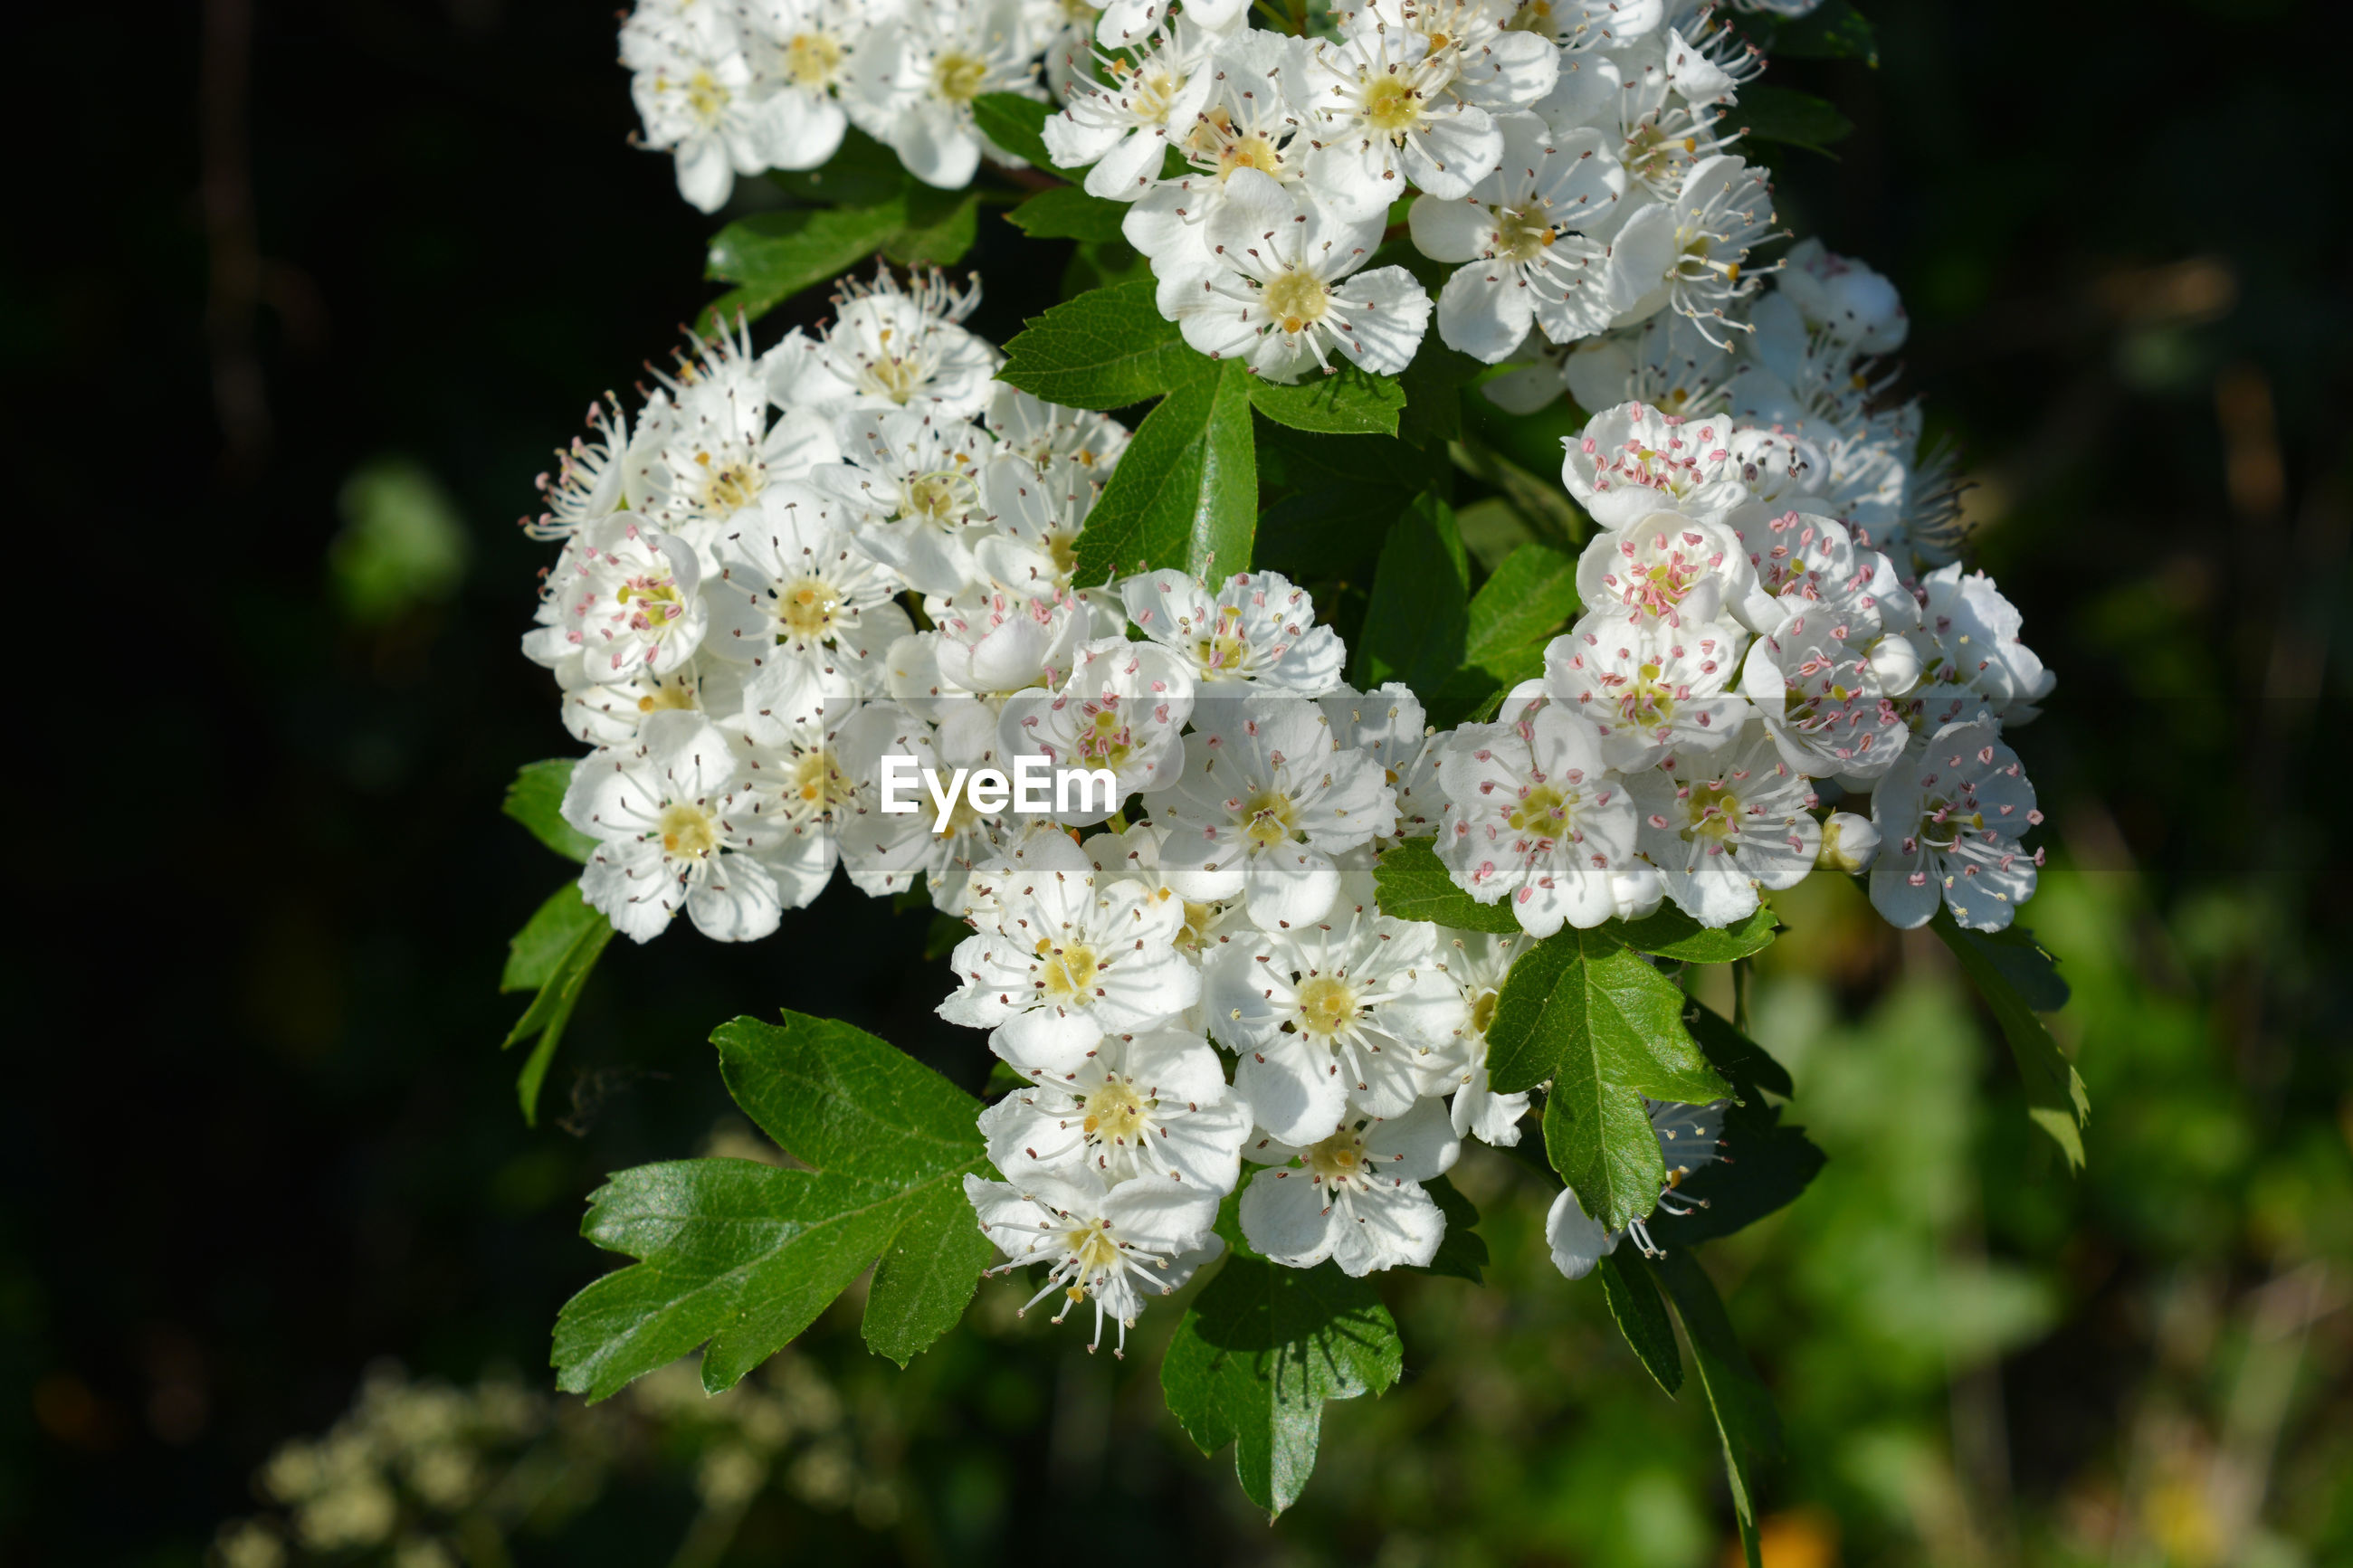 CLOSE-UP OF WHITE FLOWERING PLANT WITH TREE